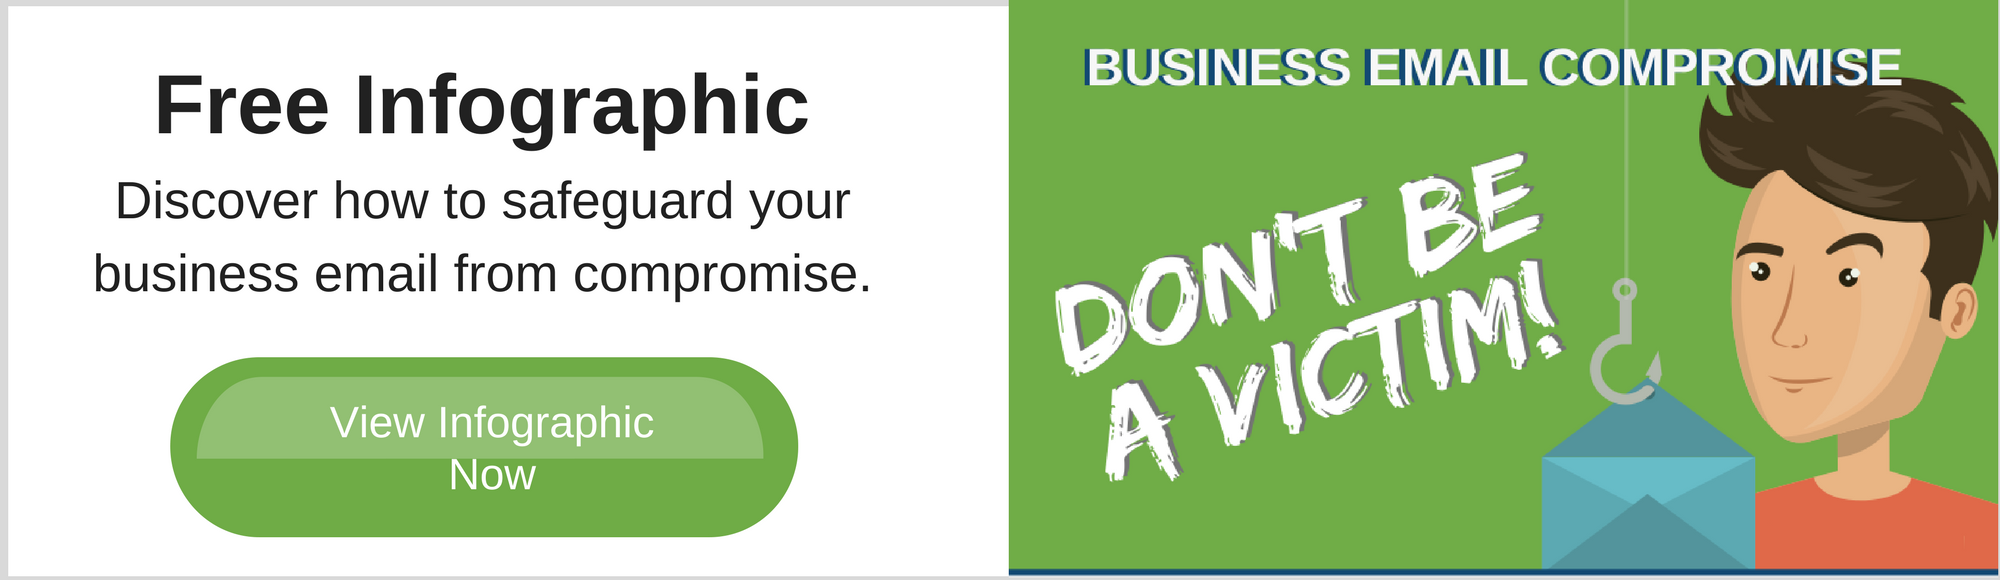 Business Email Compromise Graphic